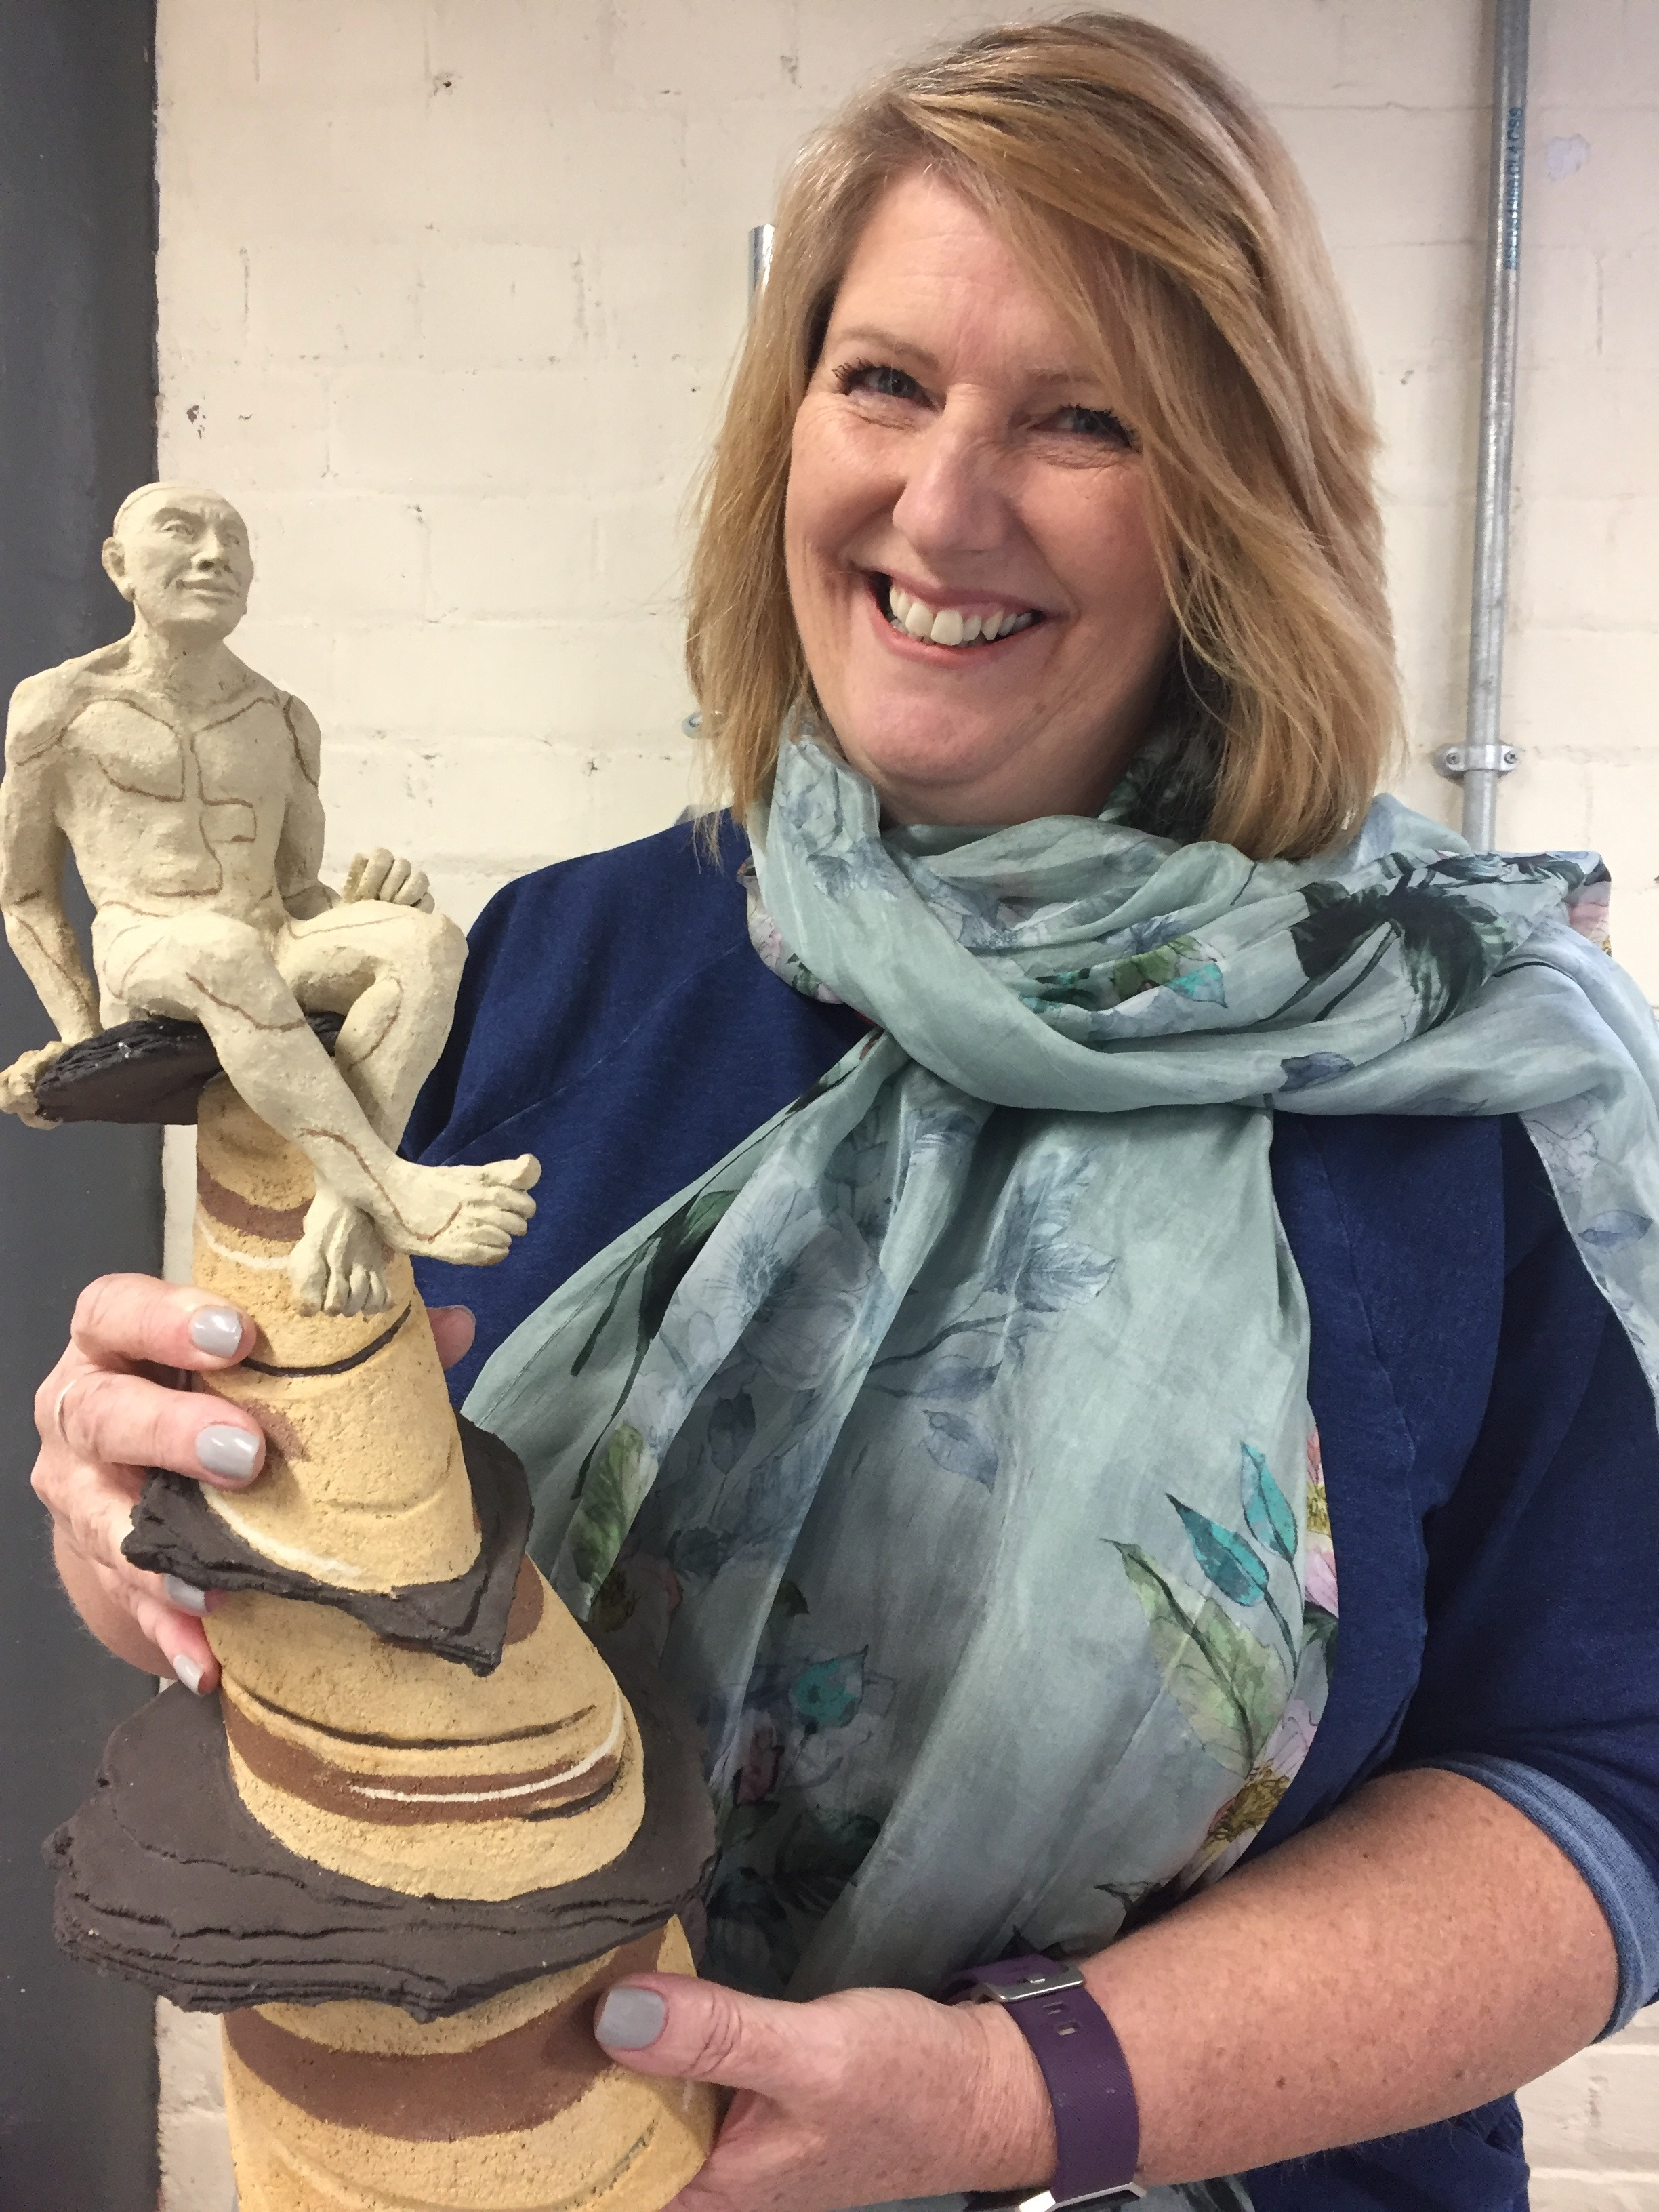 Bev in The Pottery with one of her many sculptures